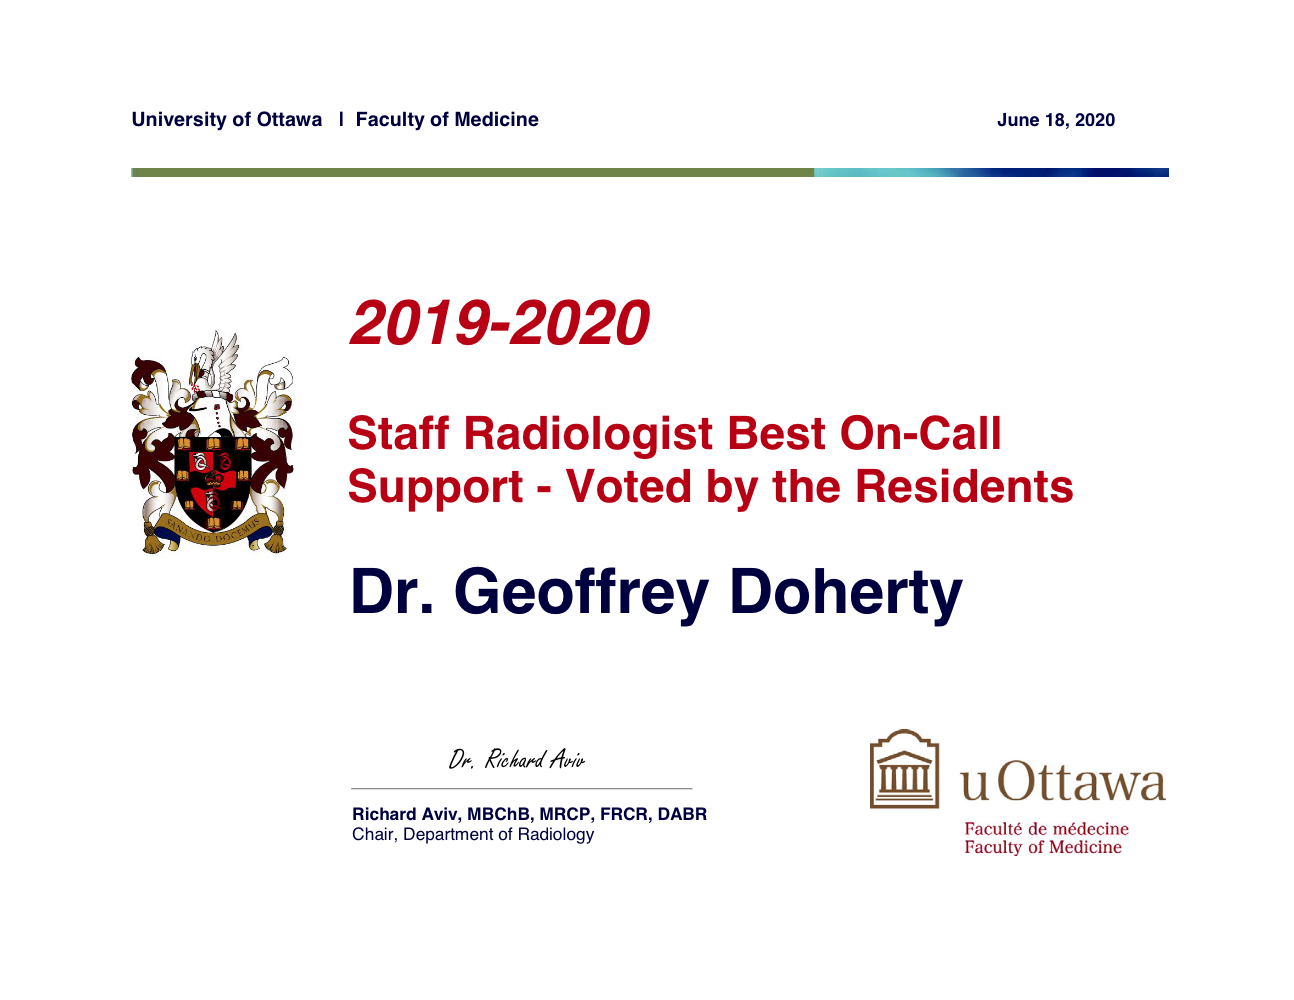 2019-2020 Staff Radiologist Best On-Call Support - Voted by the Residents. Winner is Dr. Geoffrey Doherty